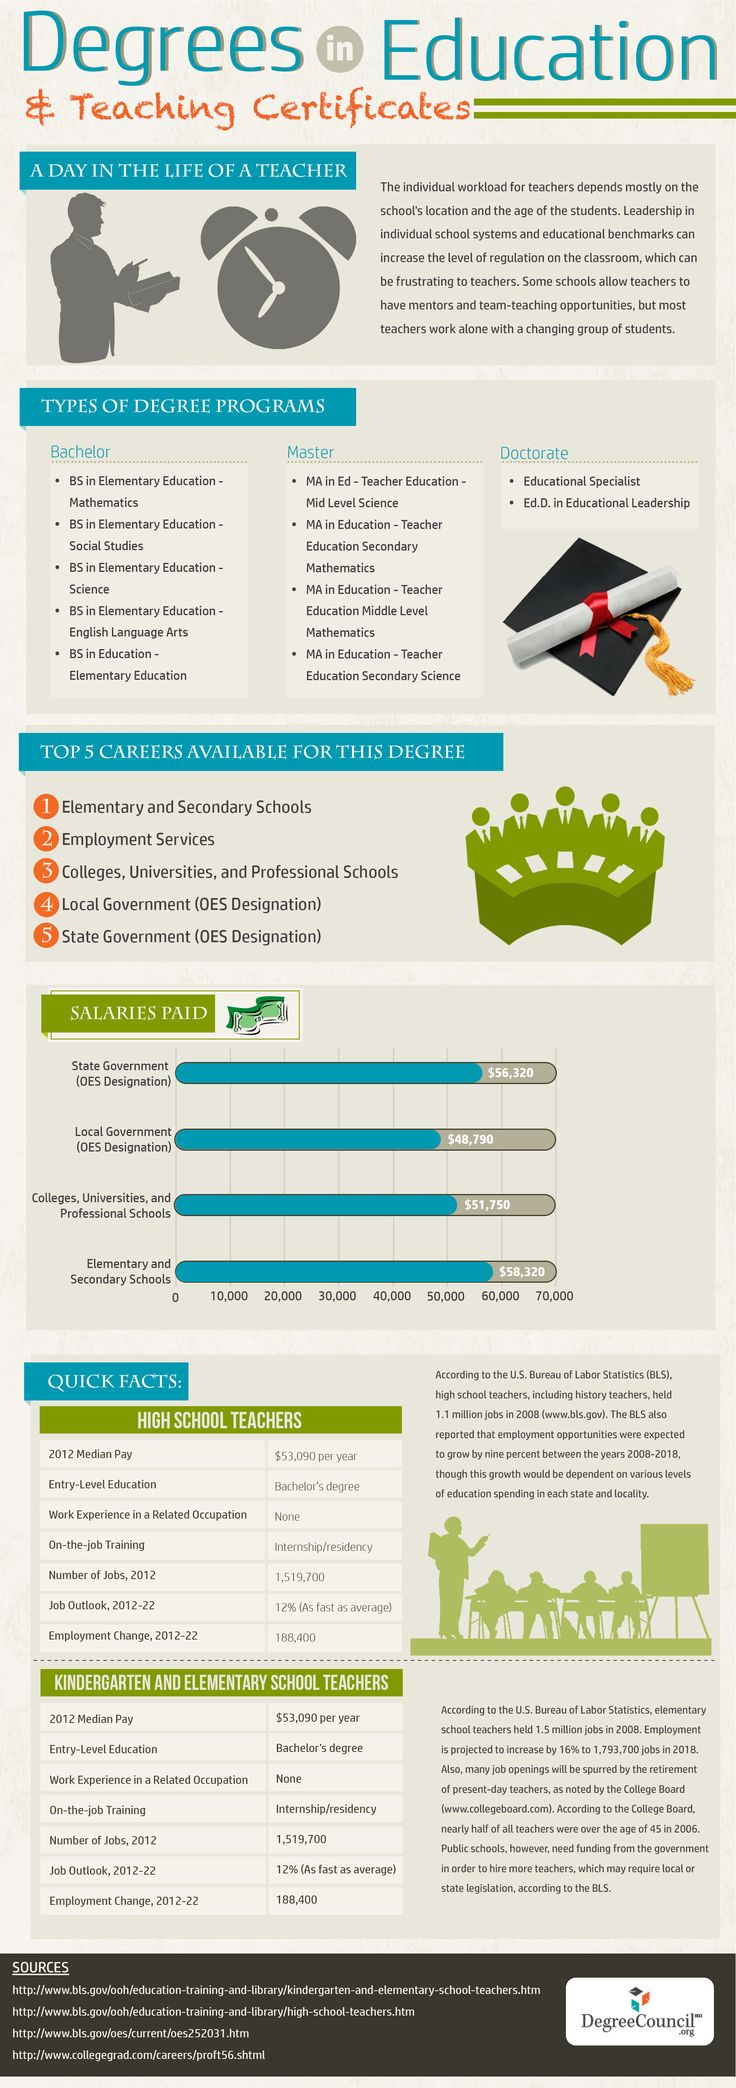 Degrees in Education and Teaching Certificates Infographic - http://elearninginfographics.com/degrees-education-teaching-certificates-infographic/